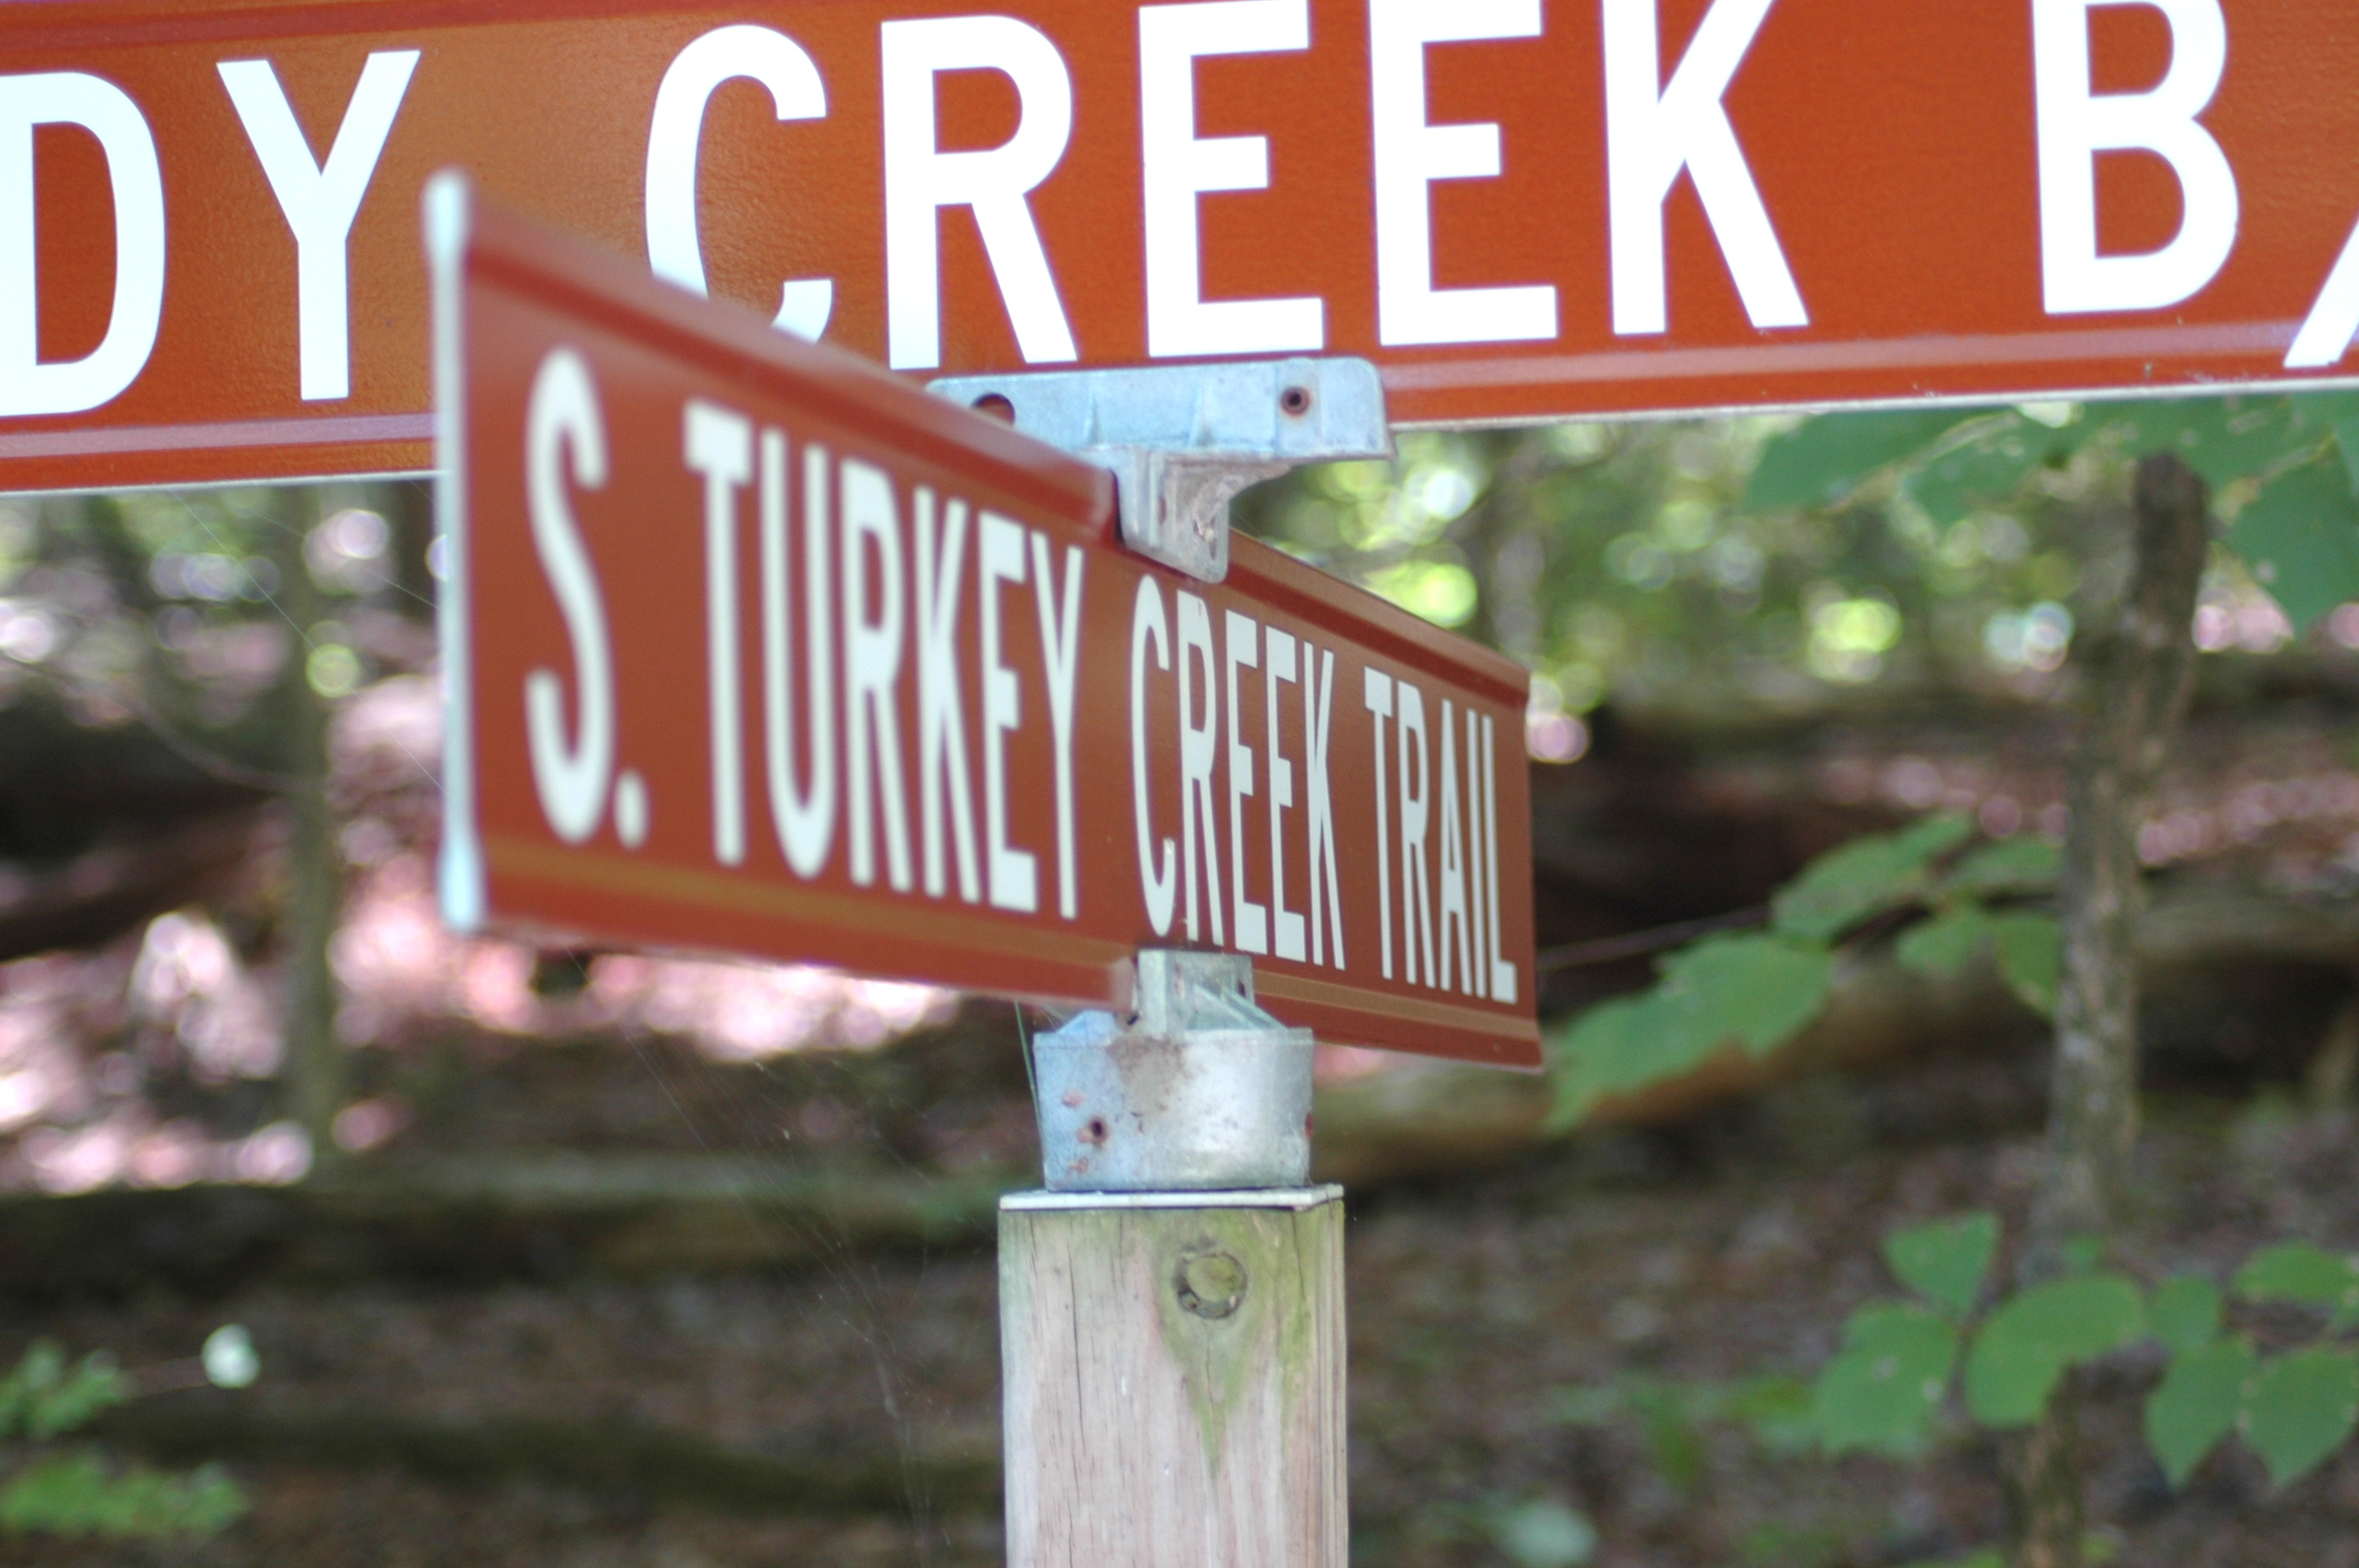 Turkey Creek Sign